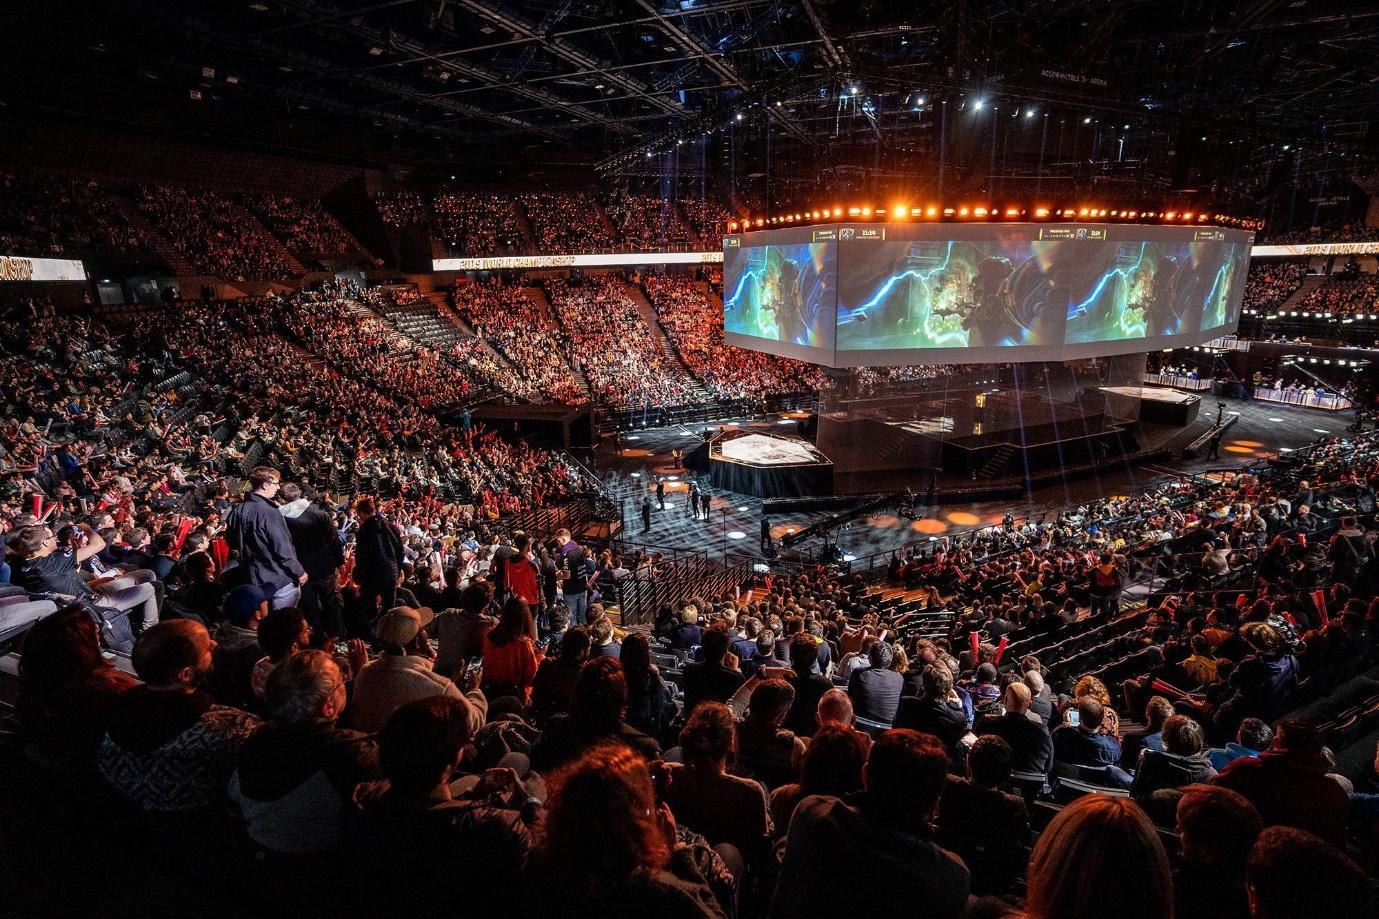 LoL Worlds 2019 beats Fortnite to set Twitch record of 1.7m viewers | Metro News